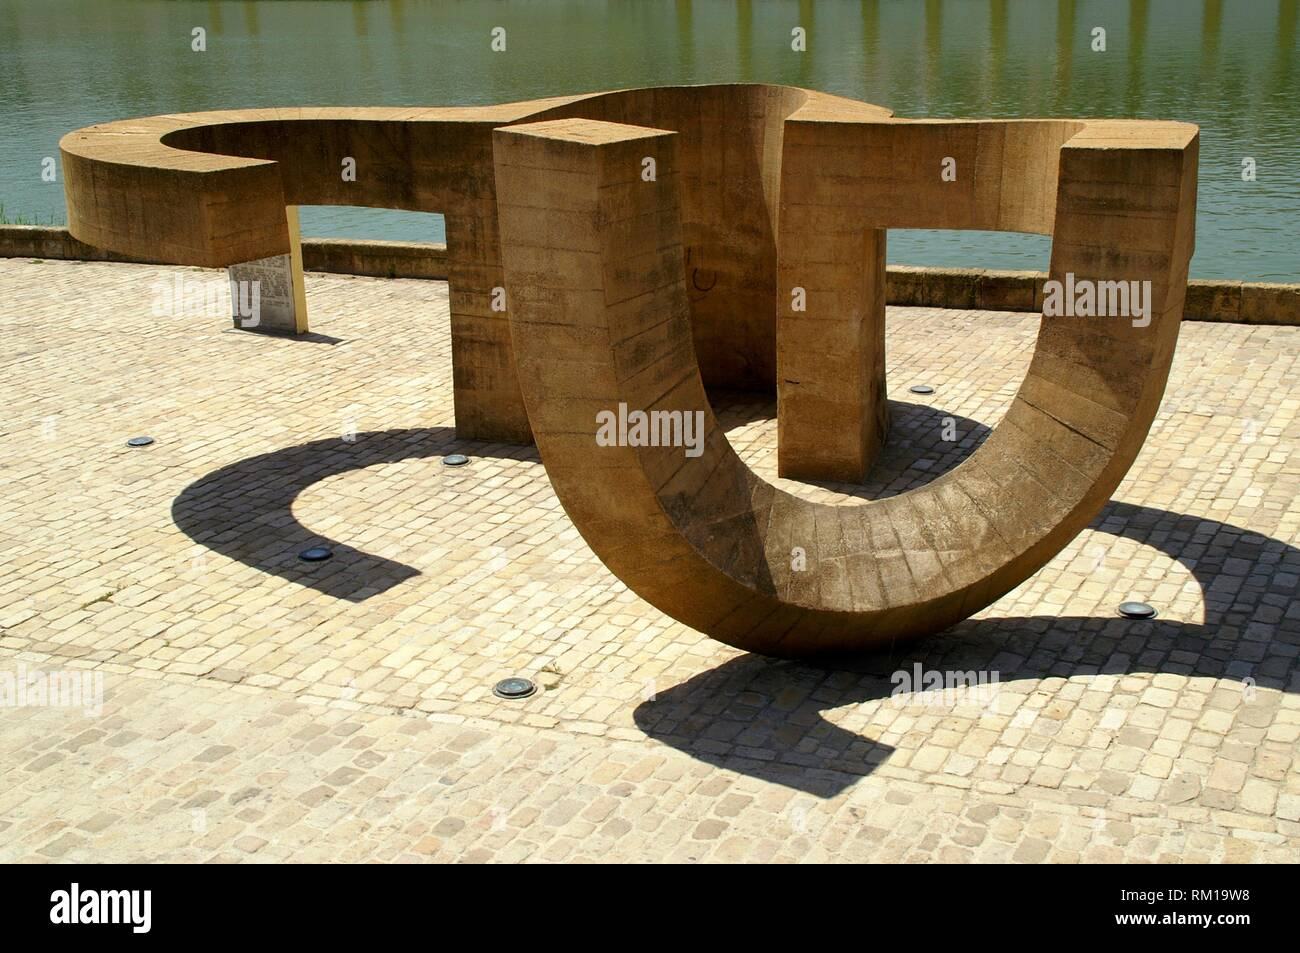 Seville (Spain). Monument to the Tolerance of Eduardo Chillida next to the Guadalquivir river in the city of Seville. - Stock Image